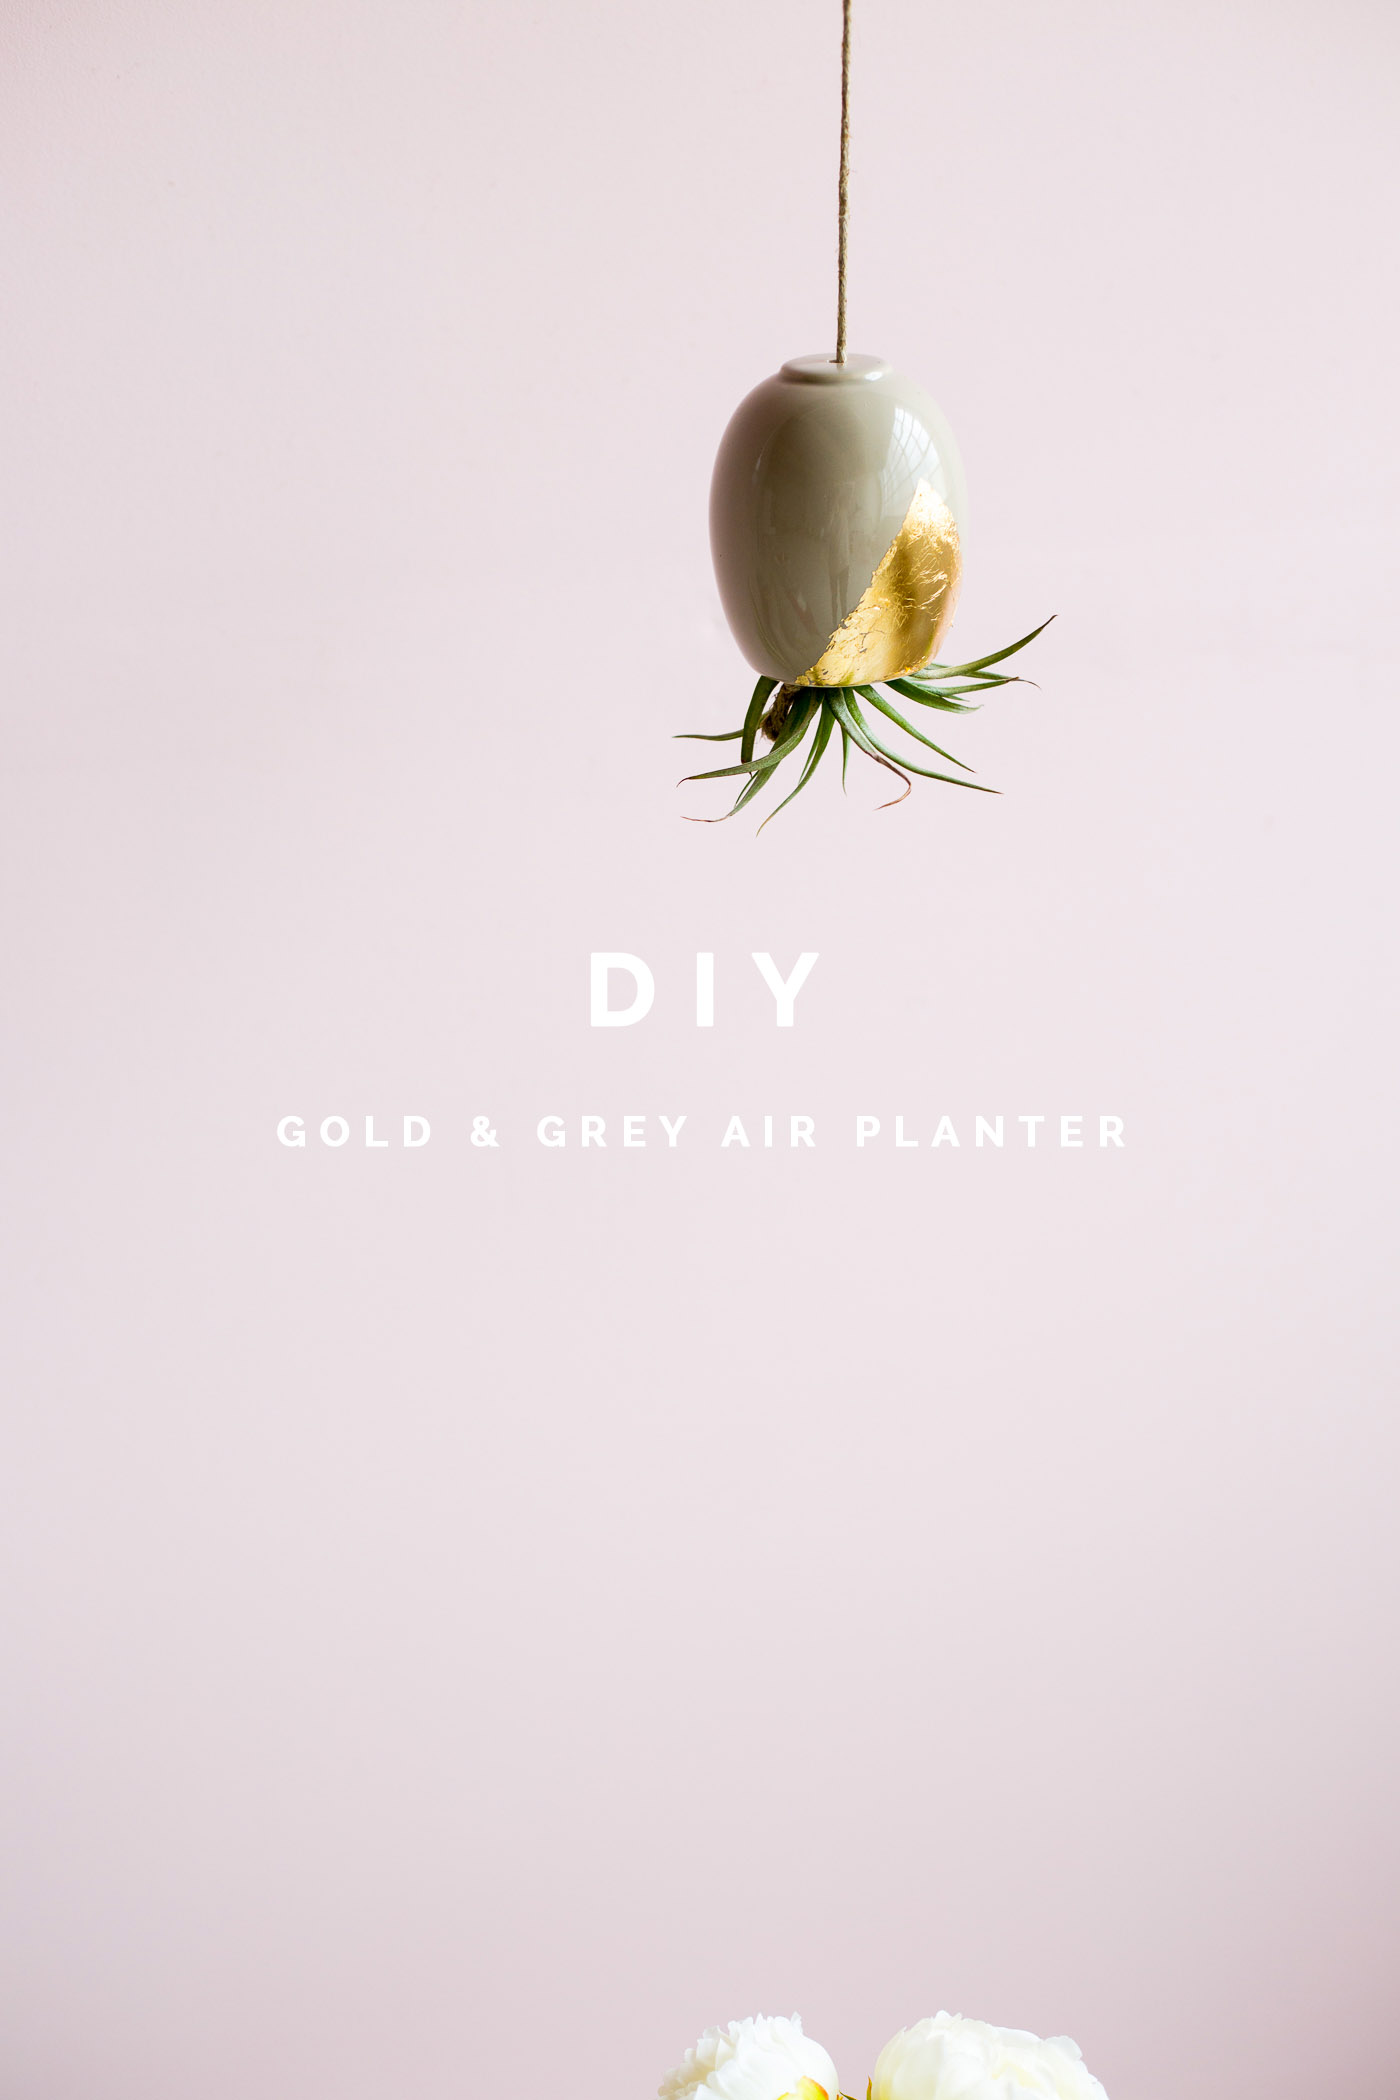 DIY Gold & Grey Hanging Air Planter Tutorial | Fall For DIY